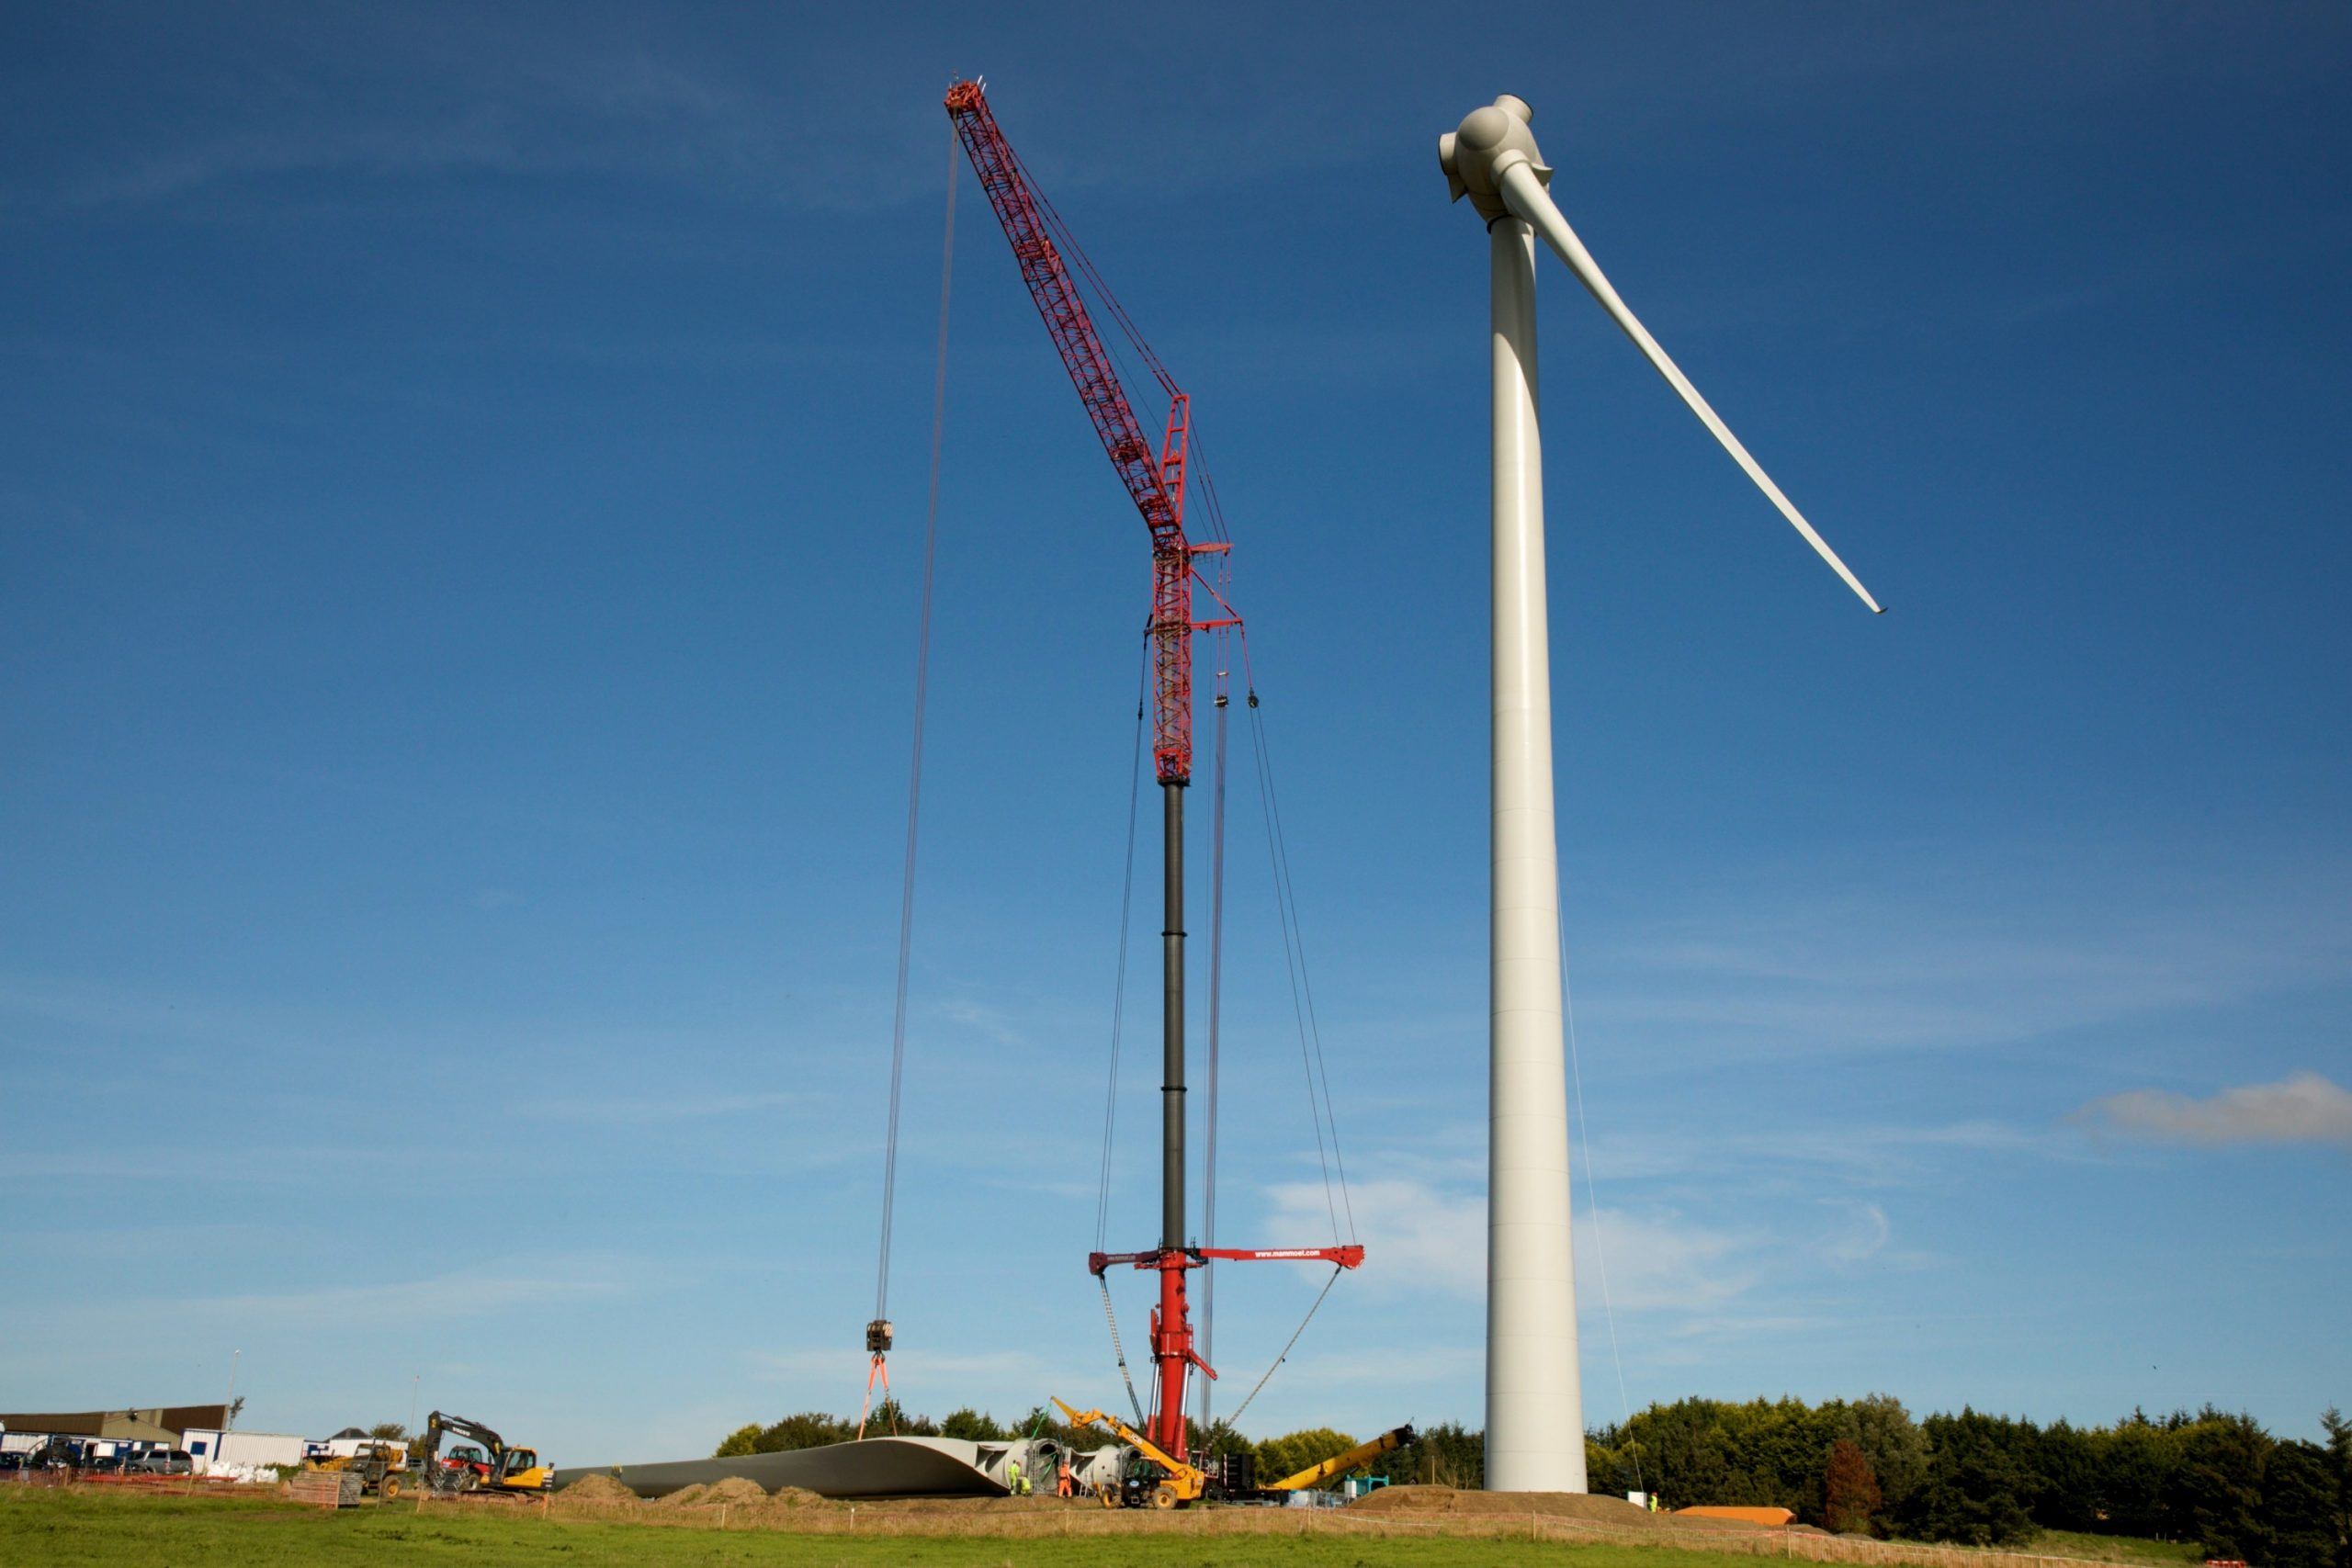 Wind Farm Construction Photographer Agencies